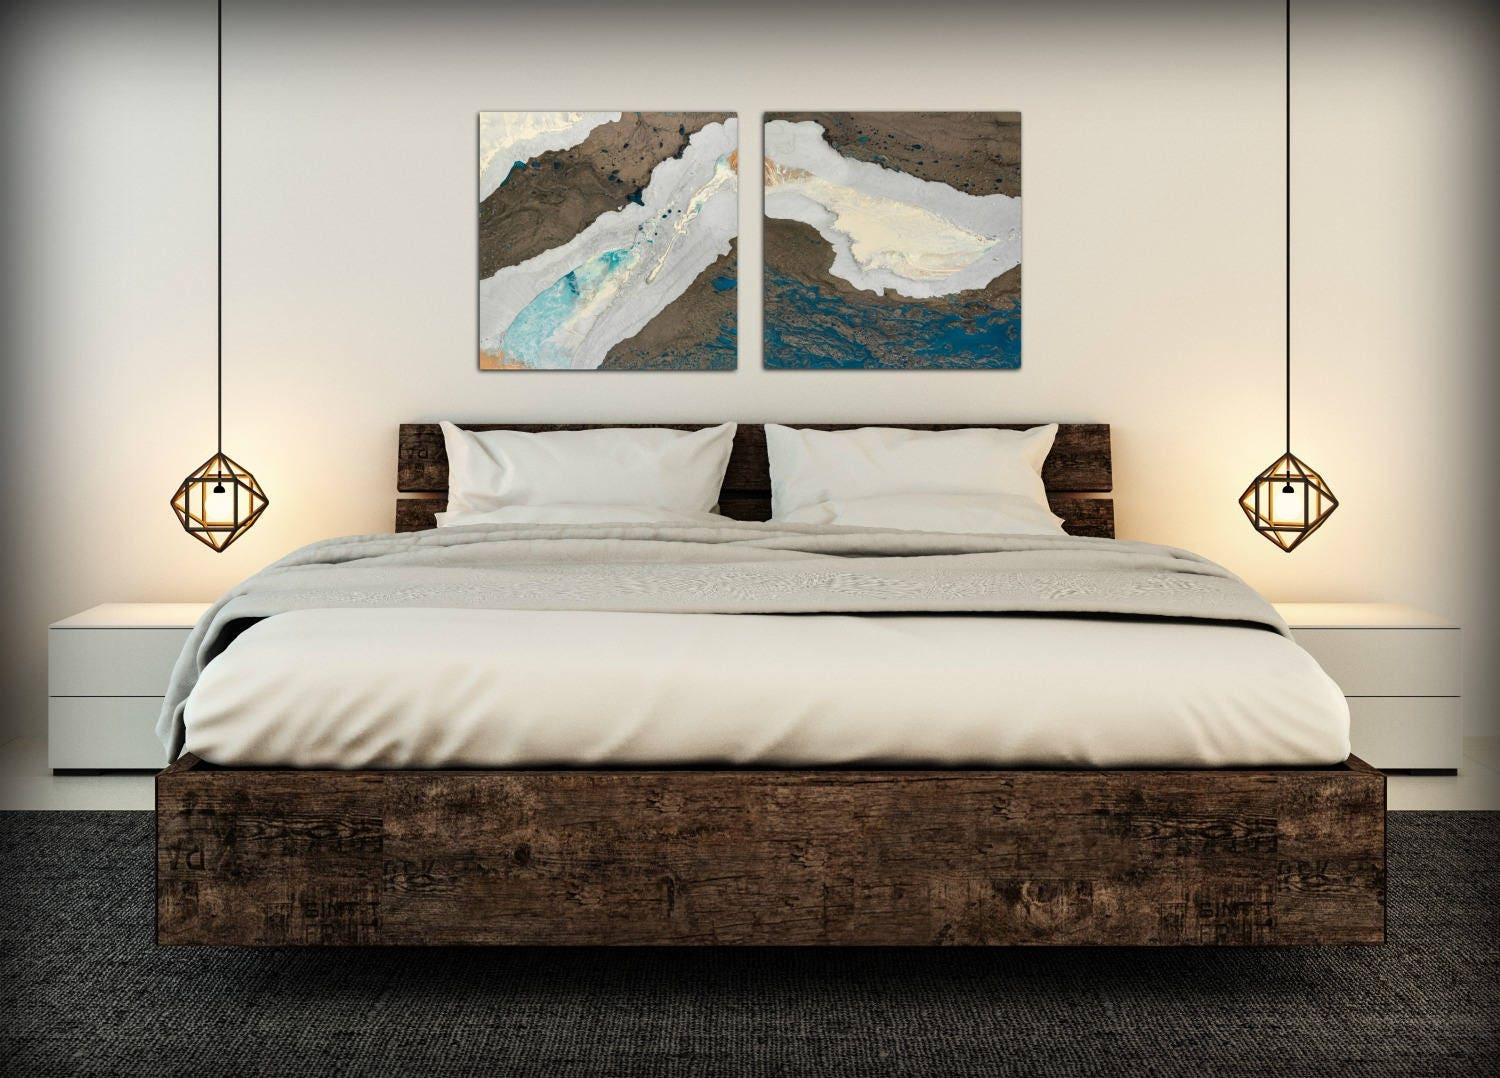 Zen Wall Art   Abstract Interior Wall Decor   Wall Art For Office Yoga  Studio Or Bedroom Art   Art Set Wall Hanging Abstract Paintings